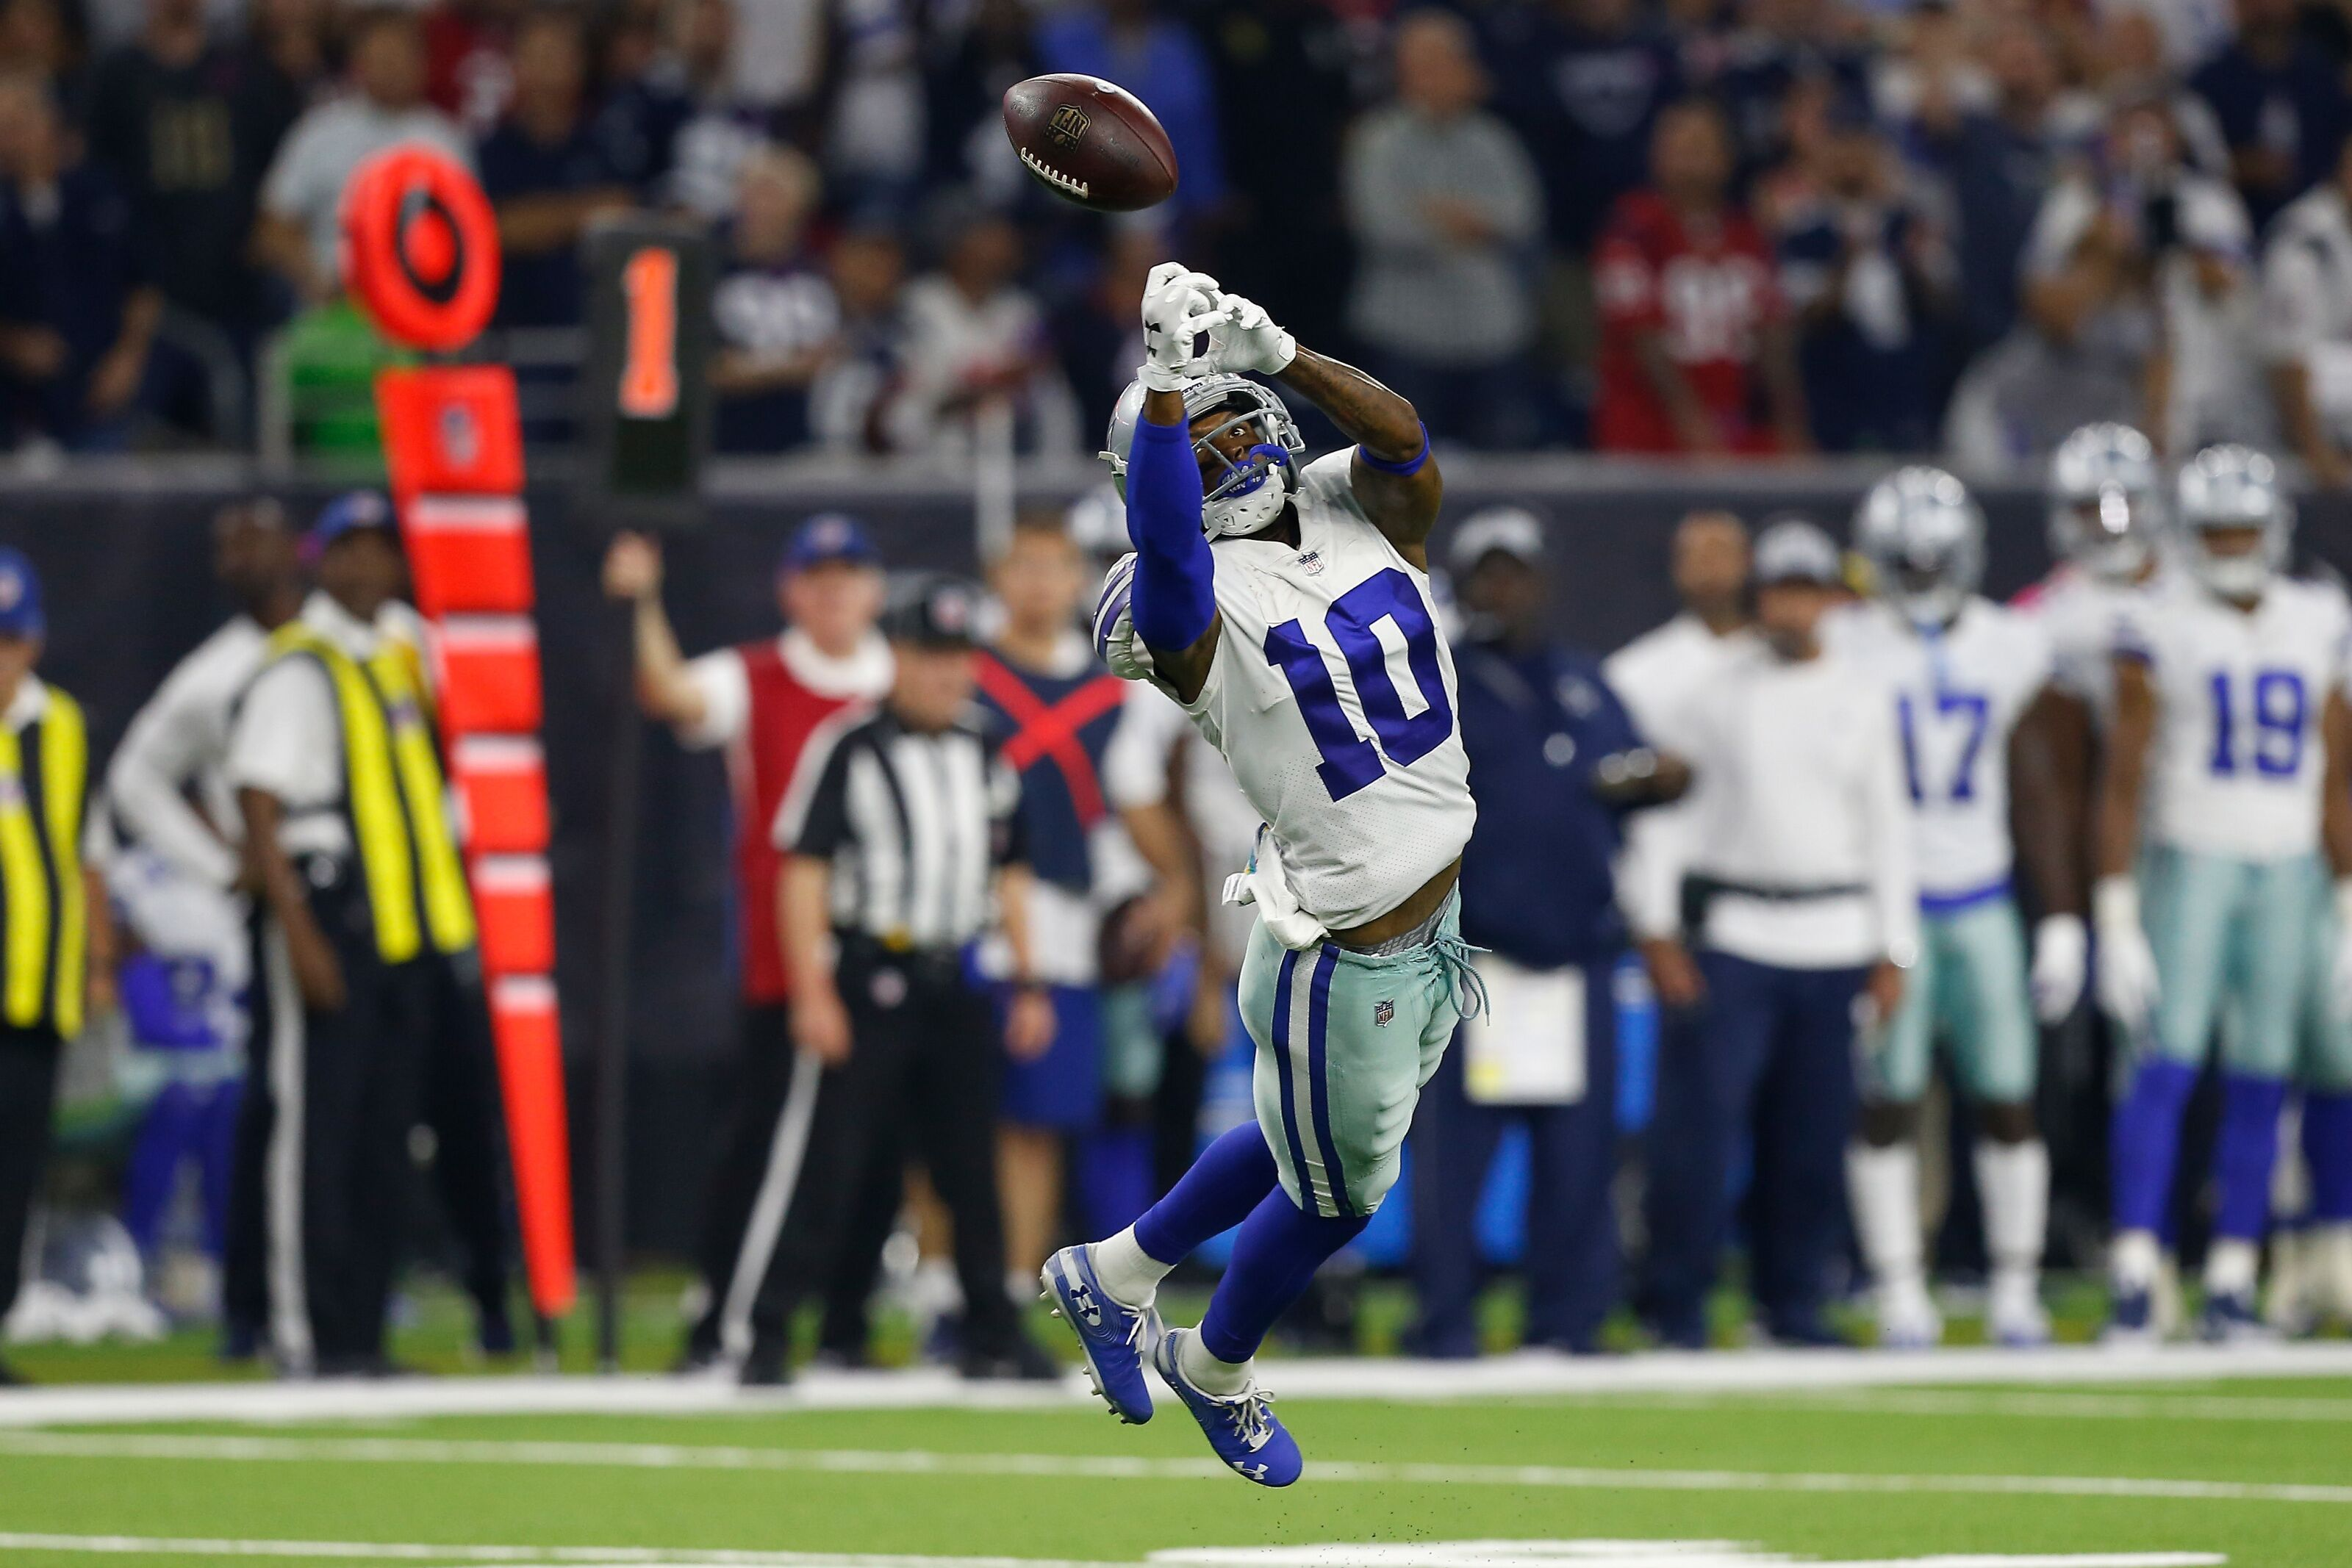 Dallas Cowboys: Will Tavon Austin survive final cuts?